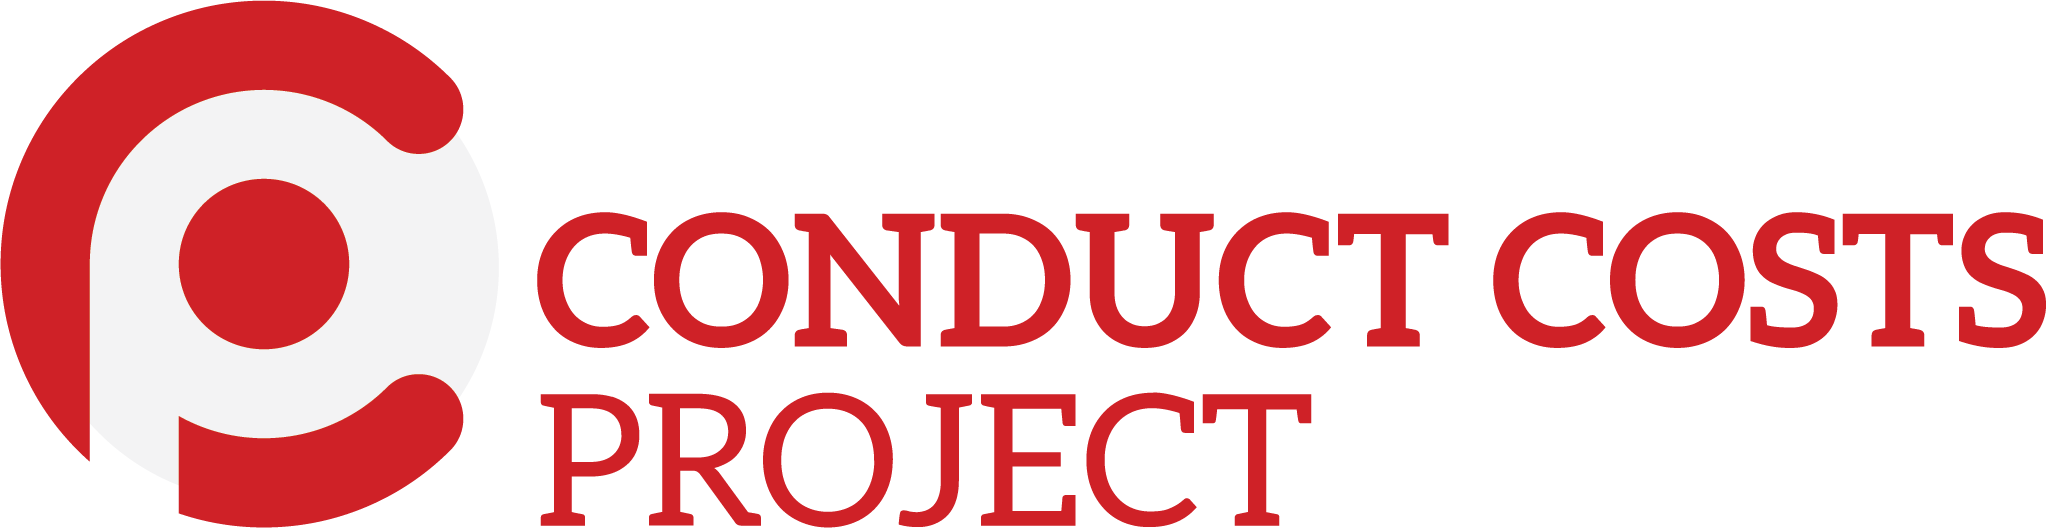 The cbr conduct costs project